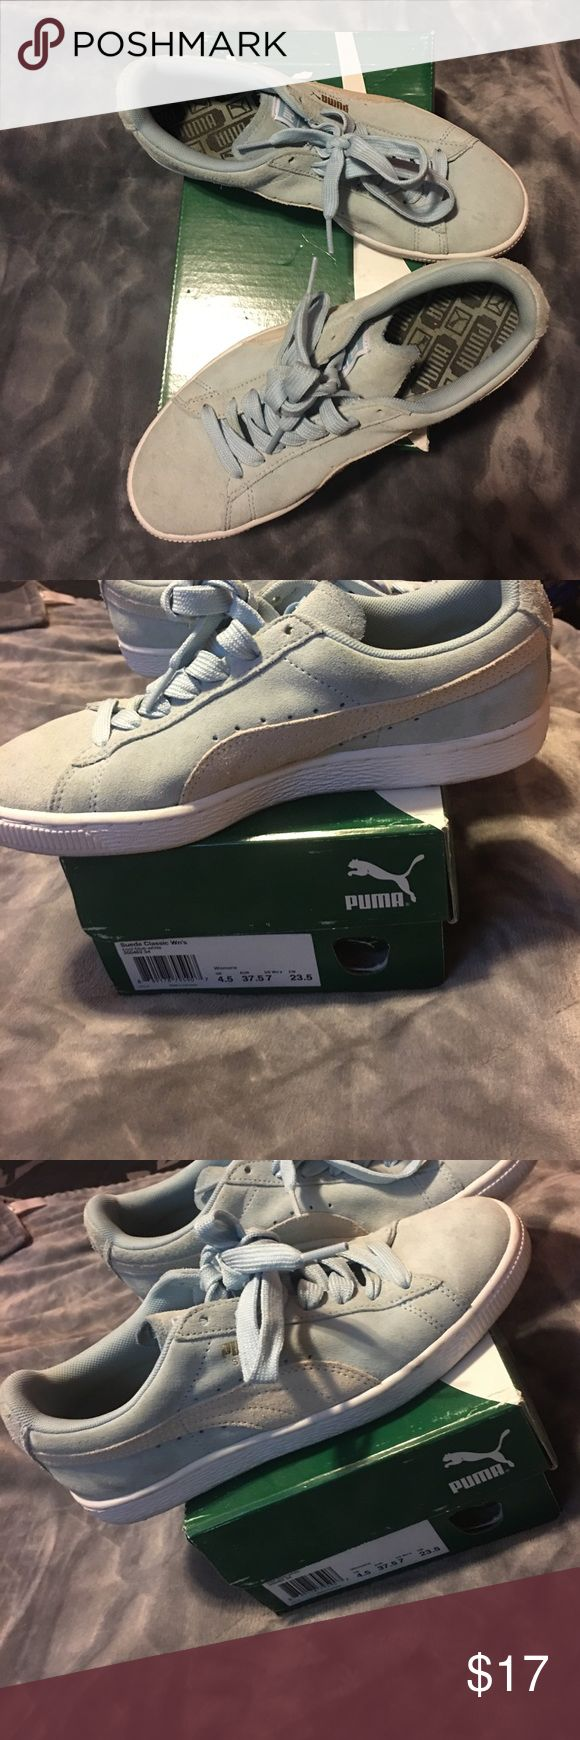 Selling this Puma women gym shoes on Poshmark! My username is: mariexo____. #shopmycloset #poshmark #fashion #shopping #style #forsale #Puma #Shoes